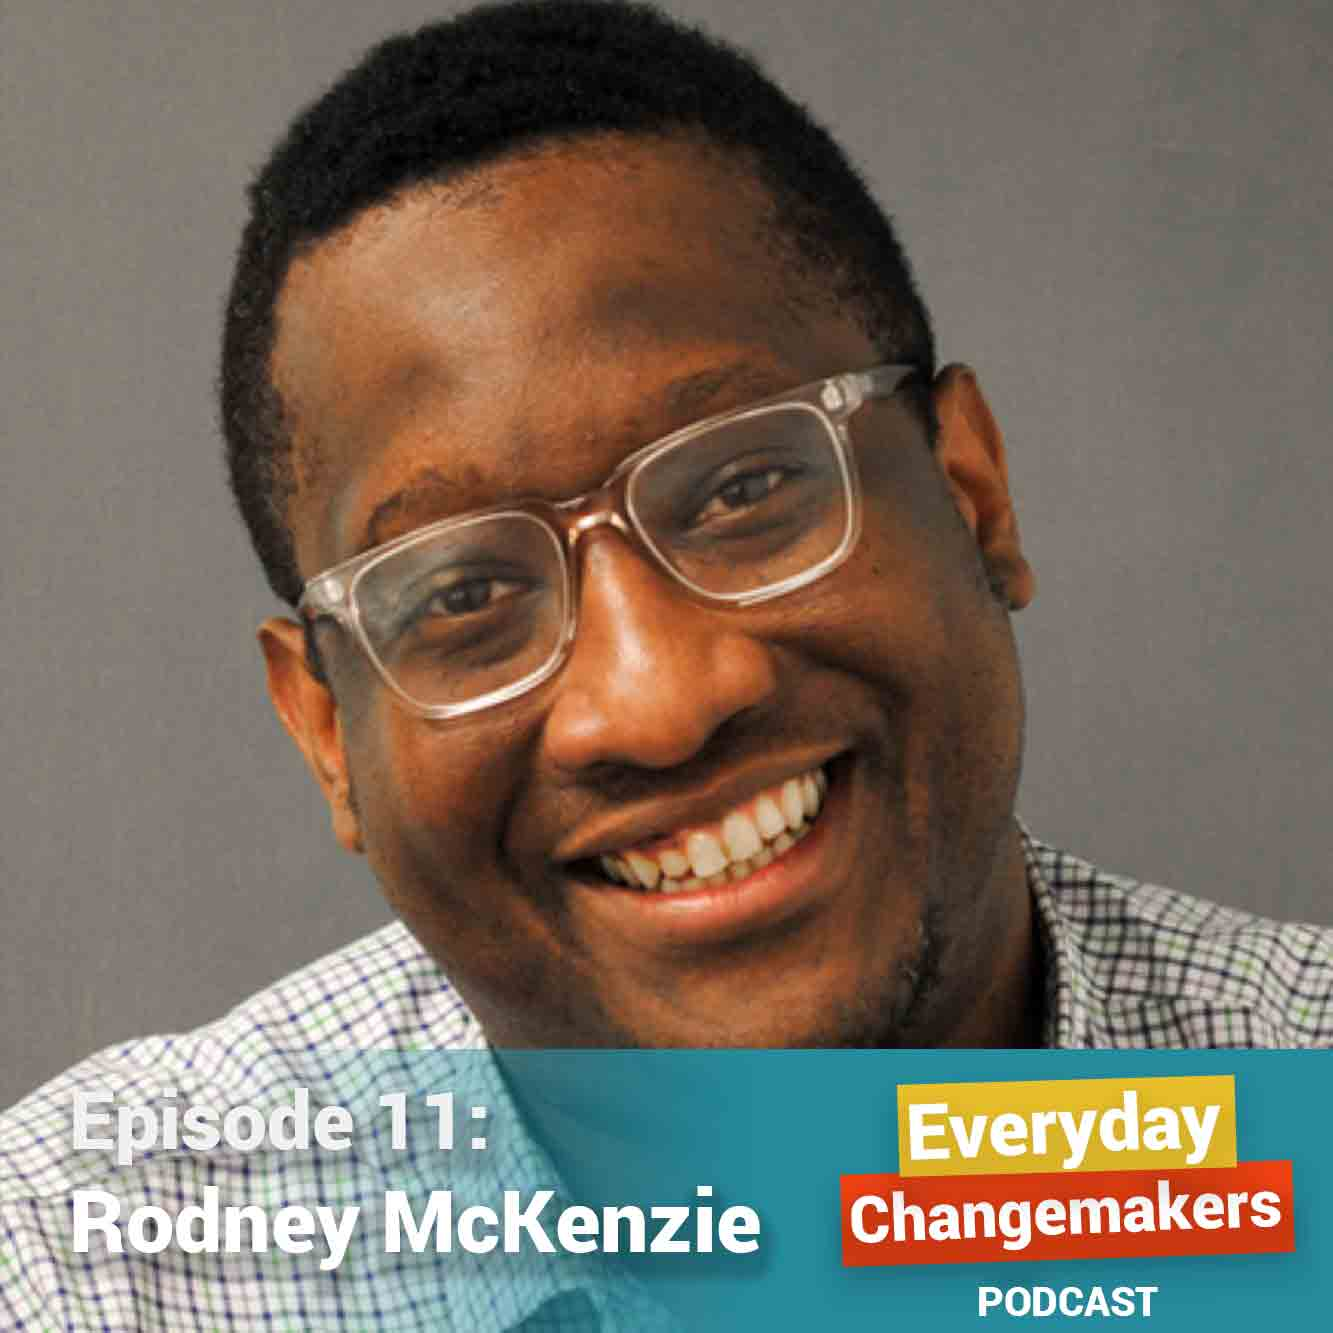 On Shifting The Story and Finding Your Own Goodness - Rodney McKenzie is the VP of Campaigns and Partnerships for Demos: An Equal Say and An Equal Chance For All.Rodney takes us back to the moment, over a decade ago, that woke him up to his calling. It was a moment that taught him about the power of shifting his perception from